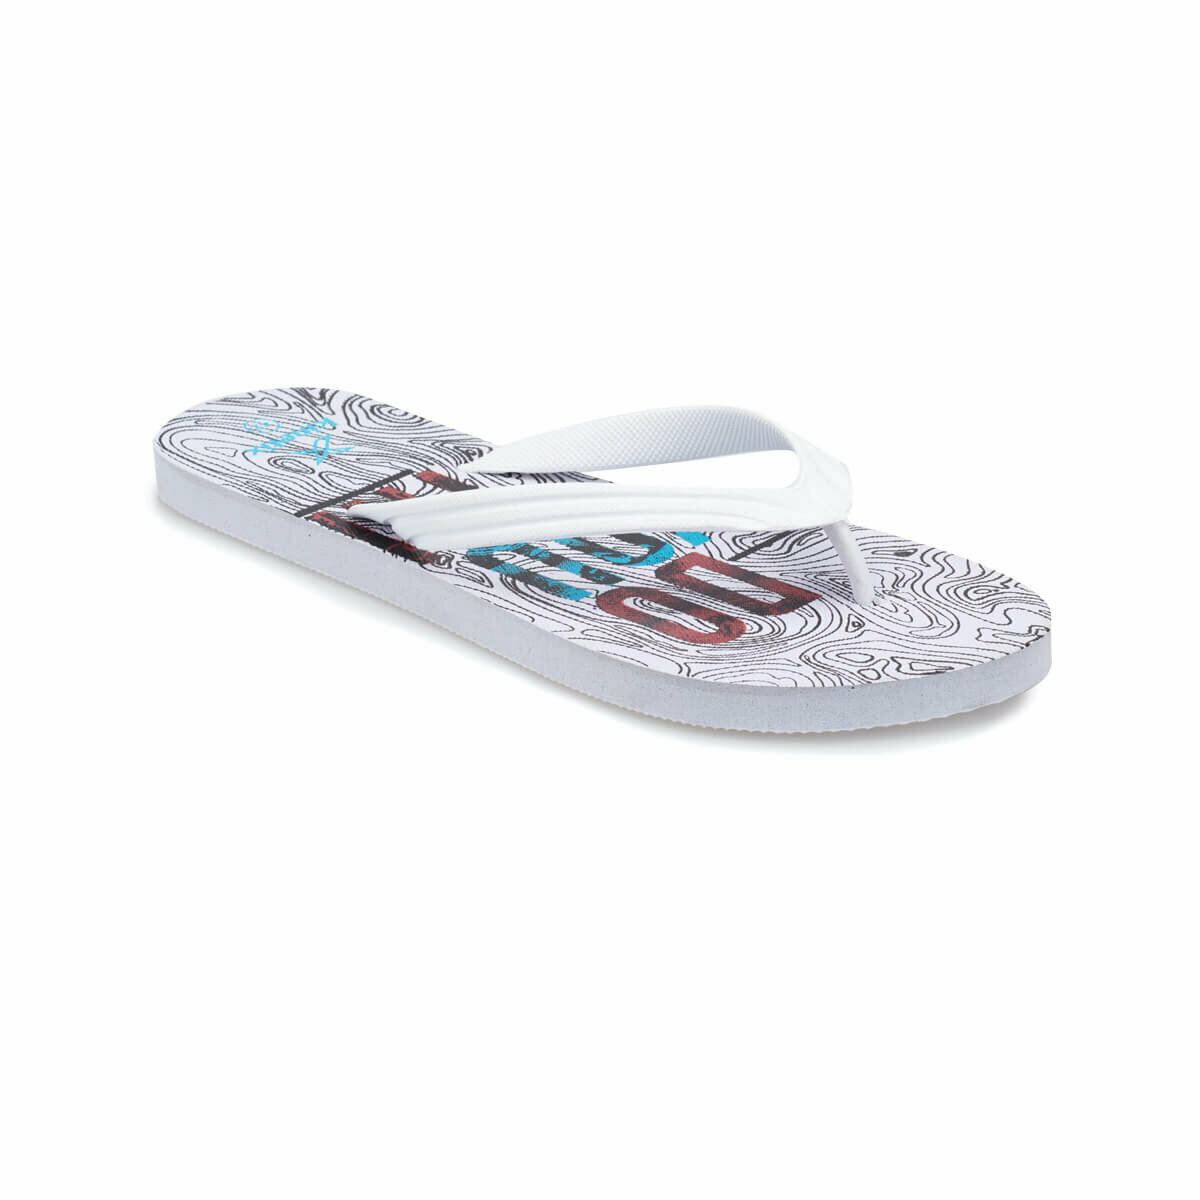 FLO DOYOU White Male Slippers KINETIX